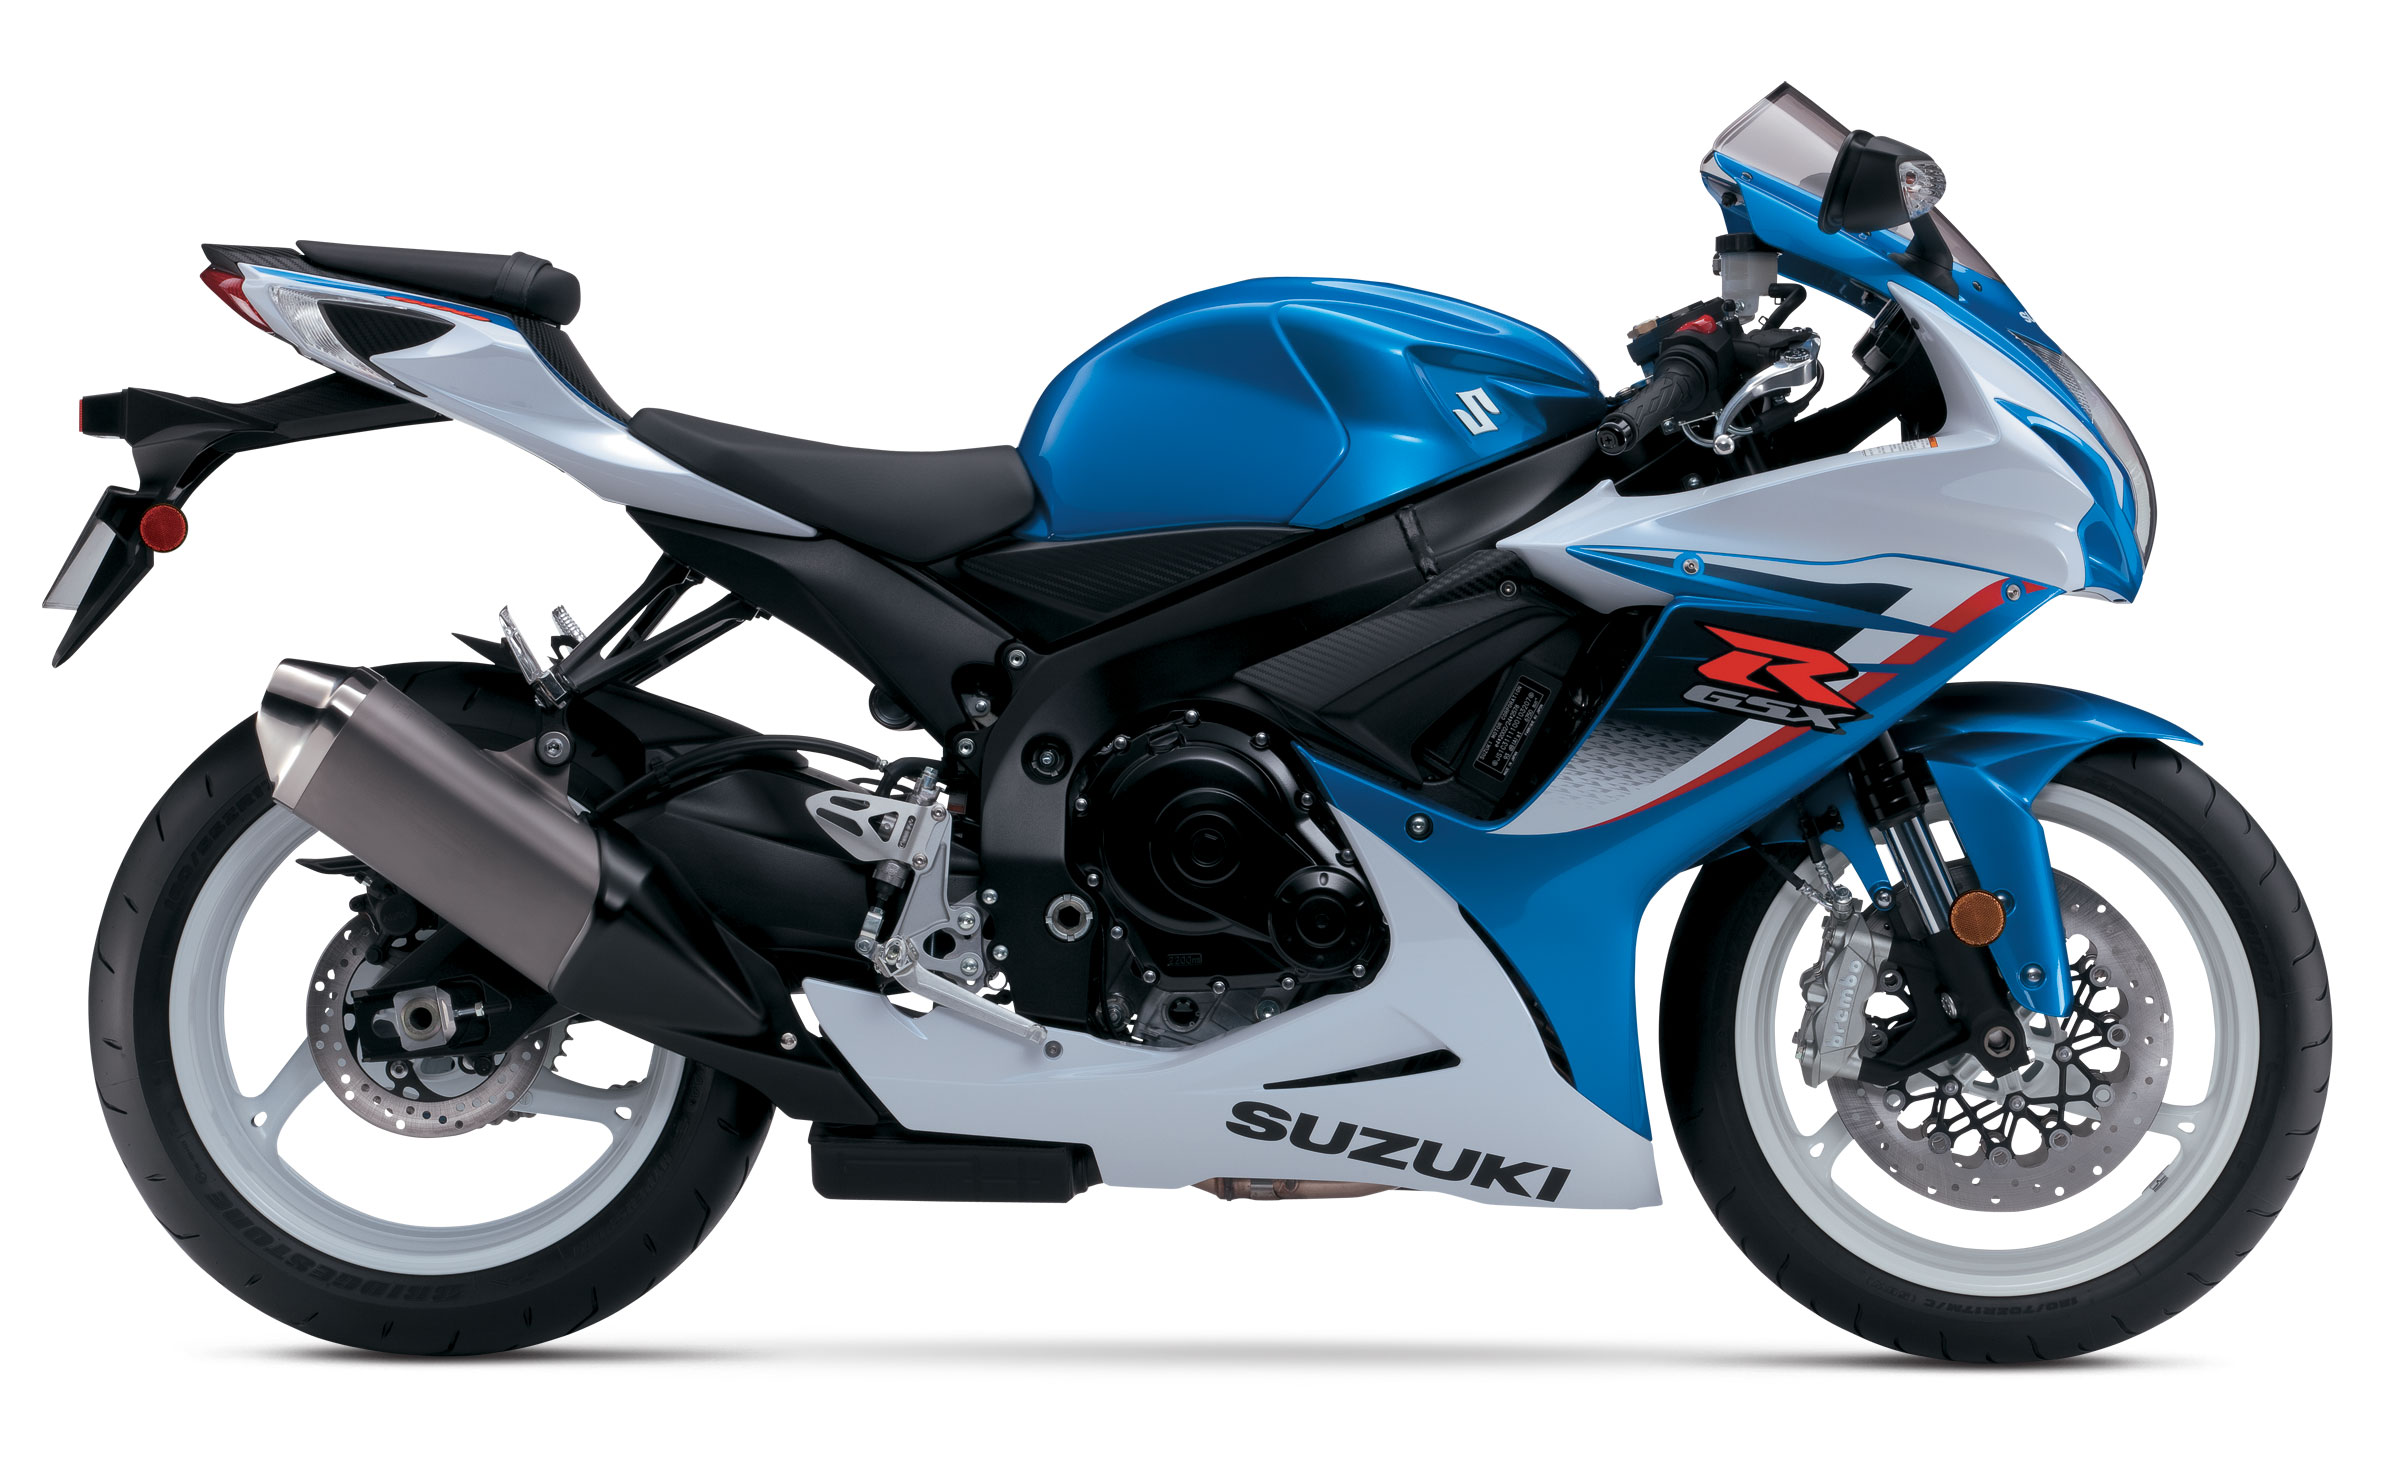 suzuki gsx r 600 2013 news information and specifications of suzuki motorcycles. Black Bedroom Furniture Sets. Home Design Ideas